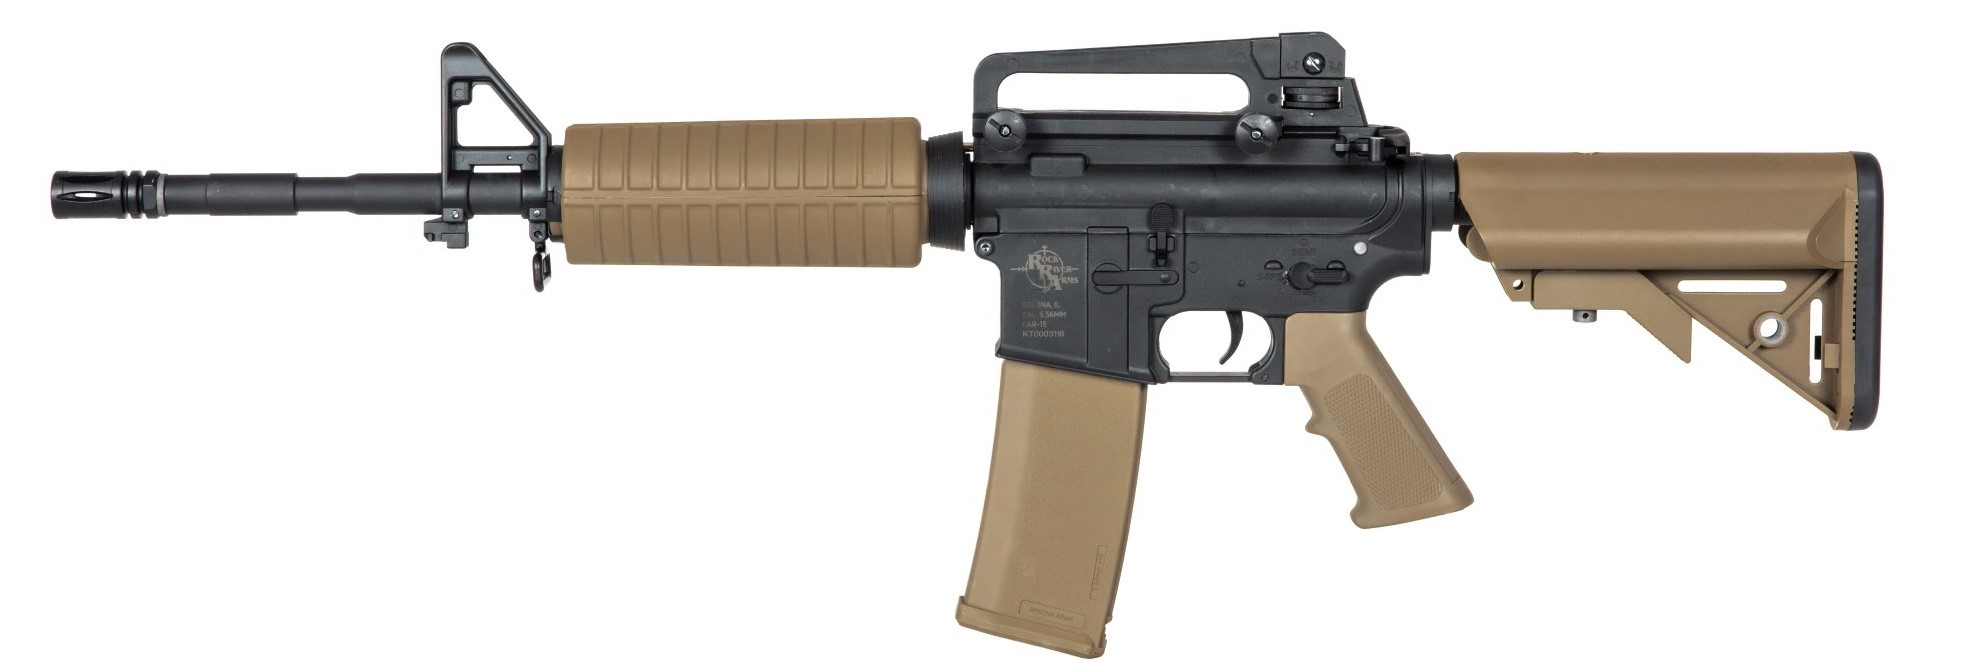 eng_pl_RRA-SA-C01-CORE-TM-carbine-replica-Half-Tan-1152222997_10